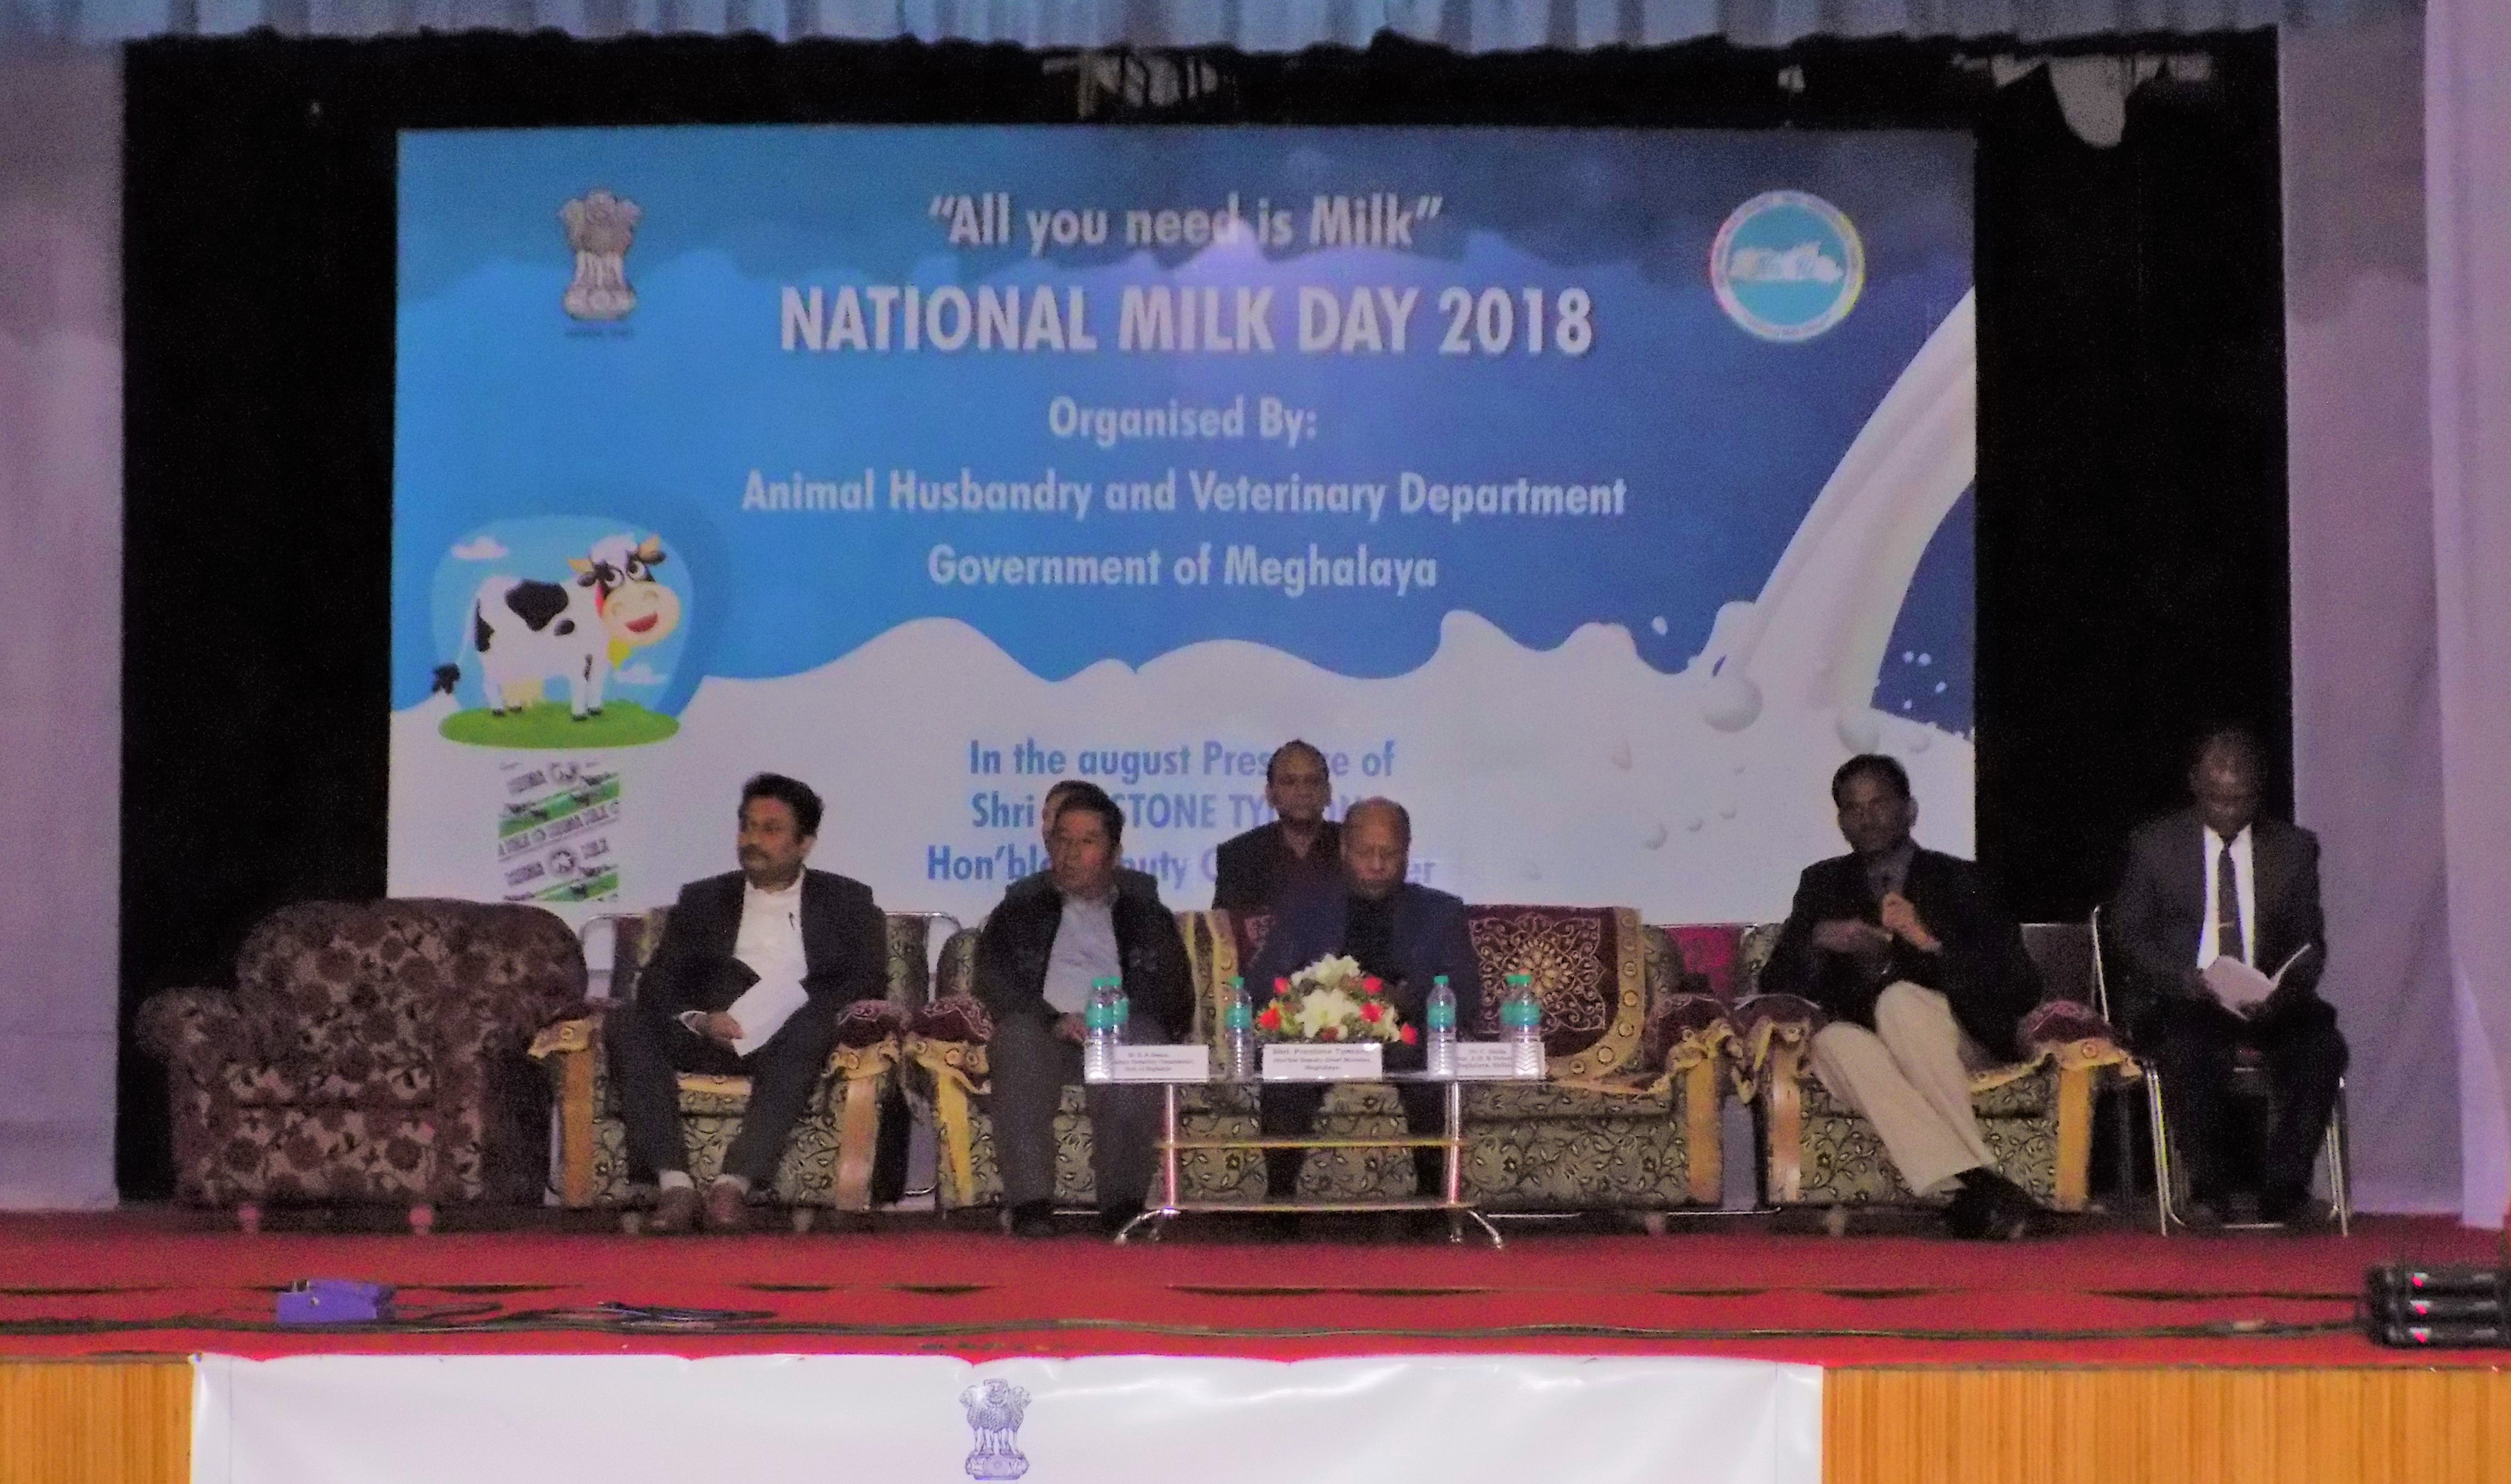 National Milk Day 2018